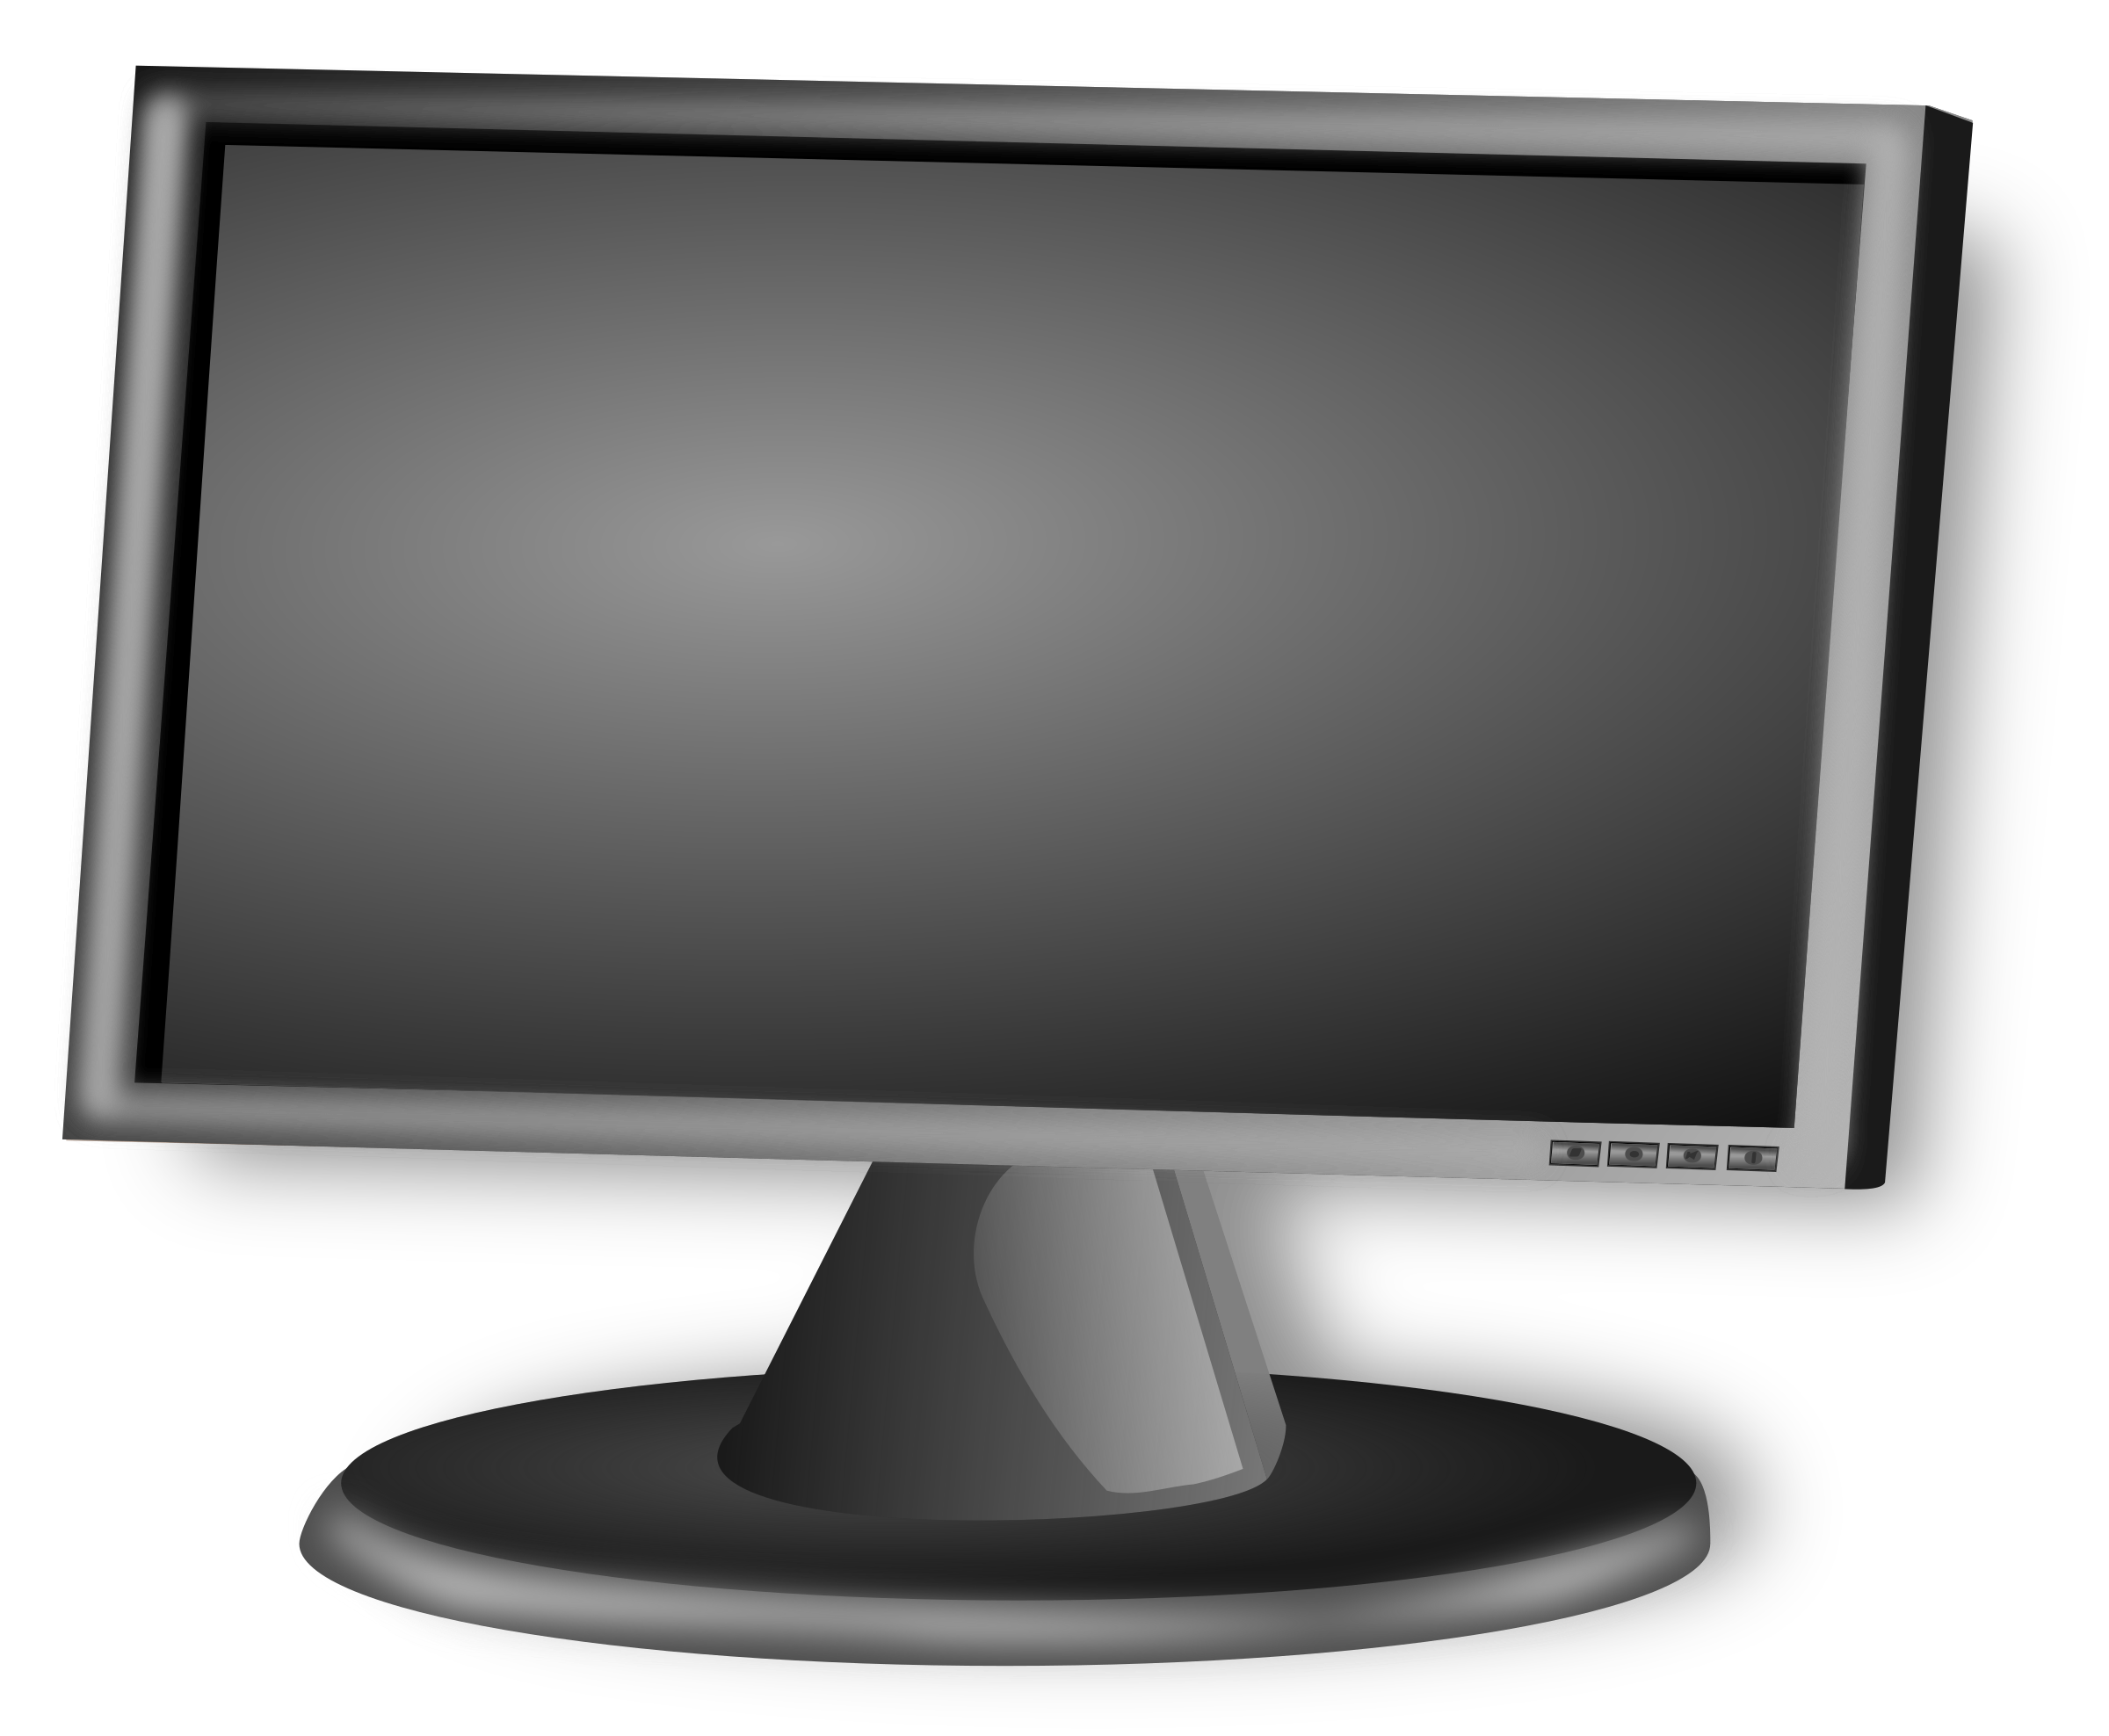 Big Screen Tv Clipart Big Image  Png